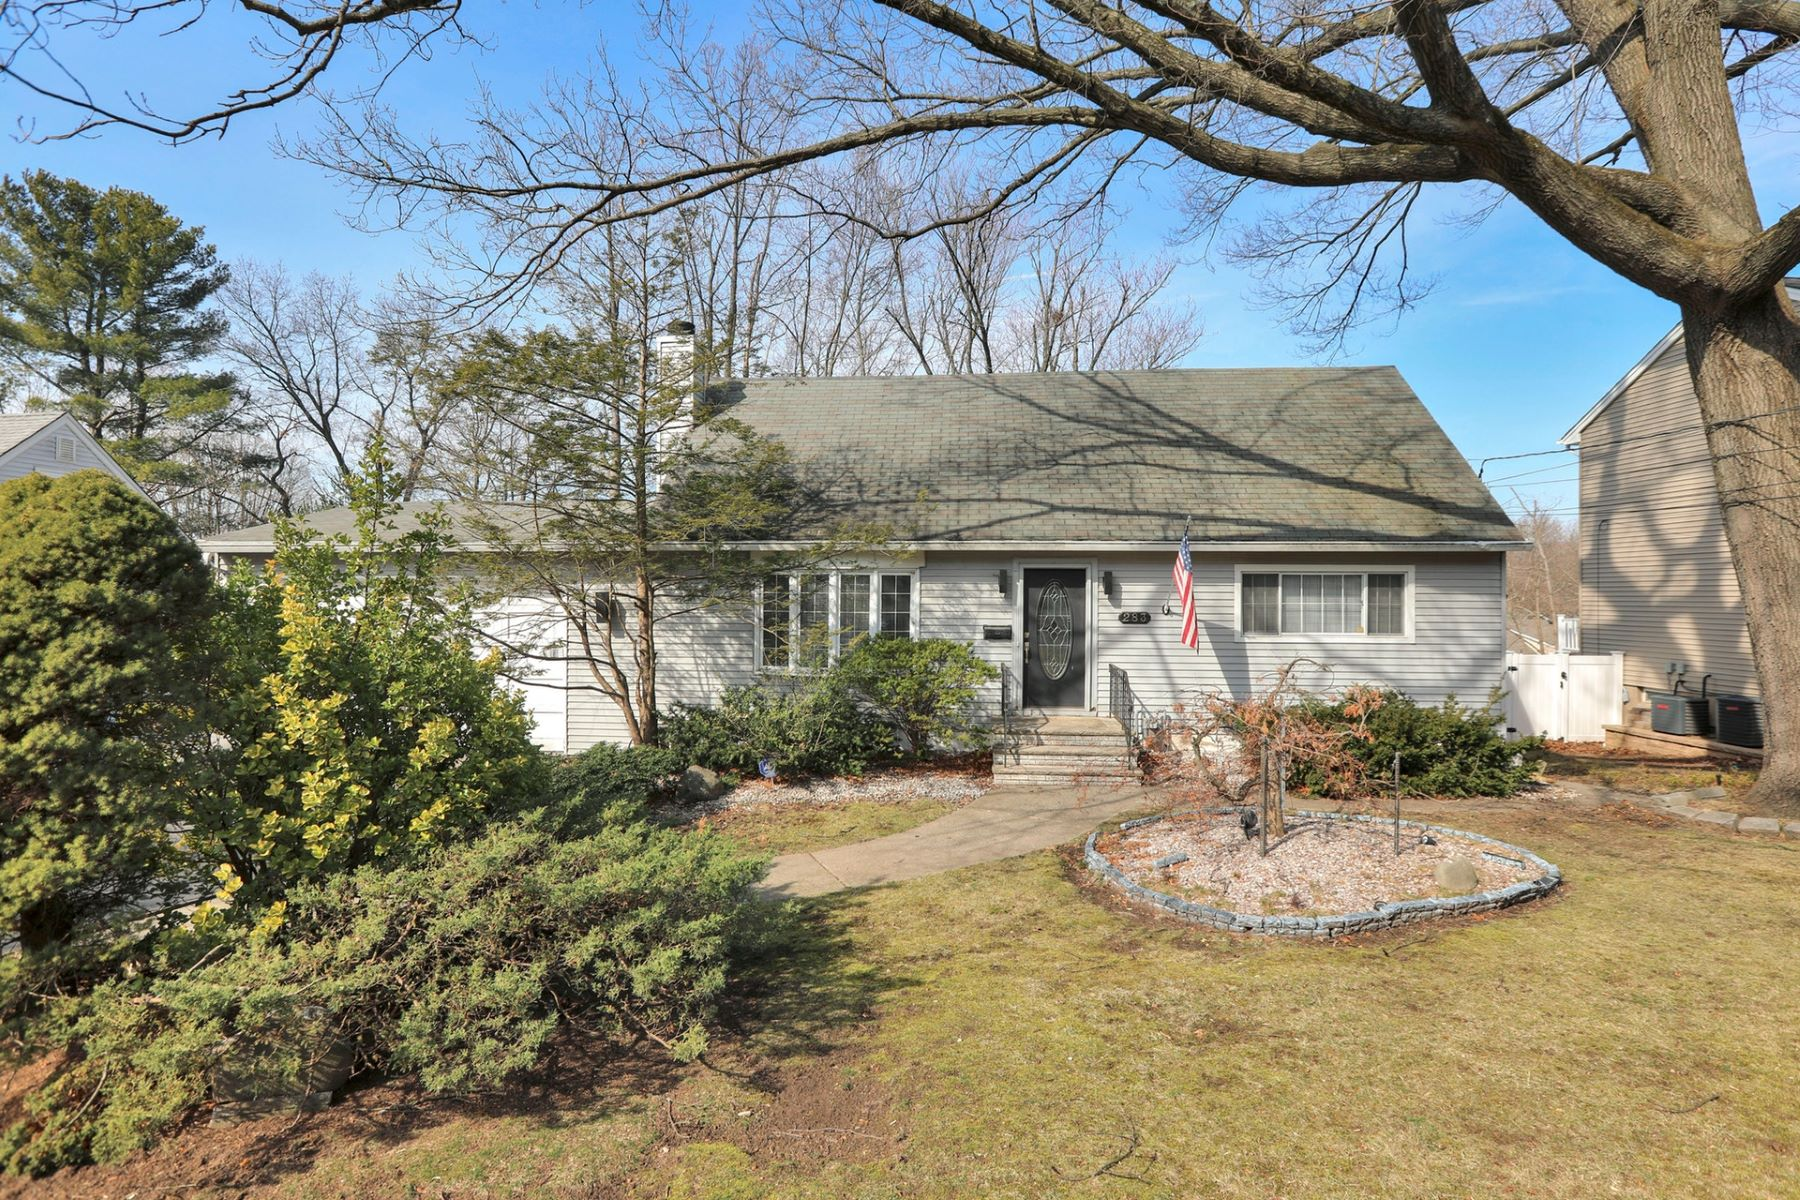 Single Family Homes for Active at Endless Possibilities 283 Wedgewood Dr Paramus, New Jersey 07652 United States